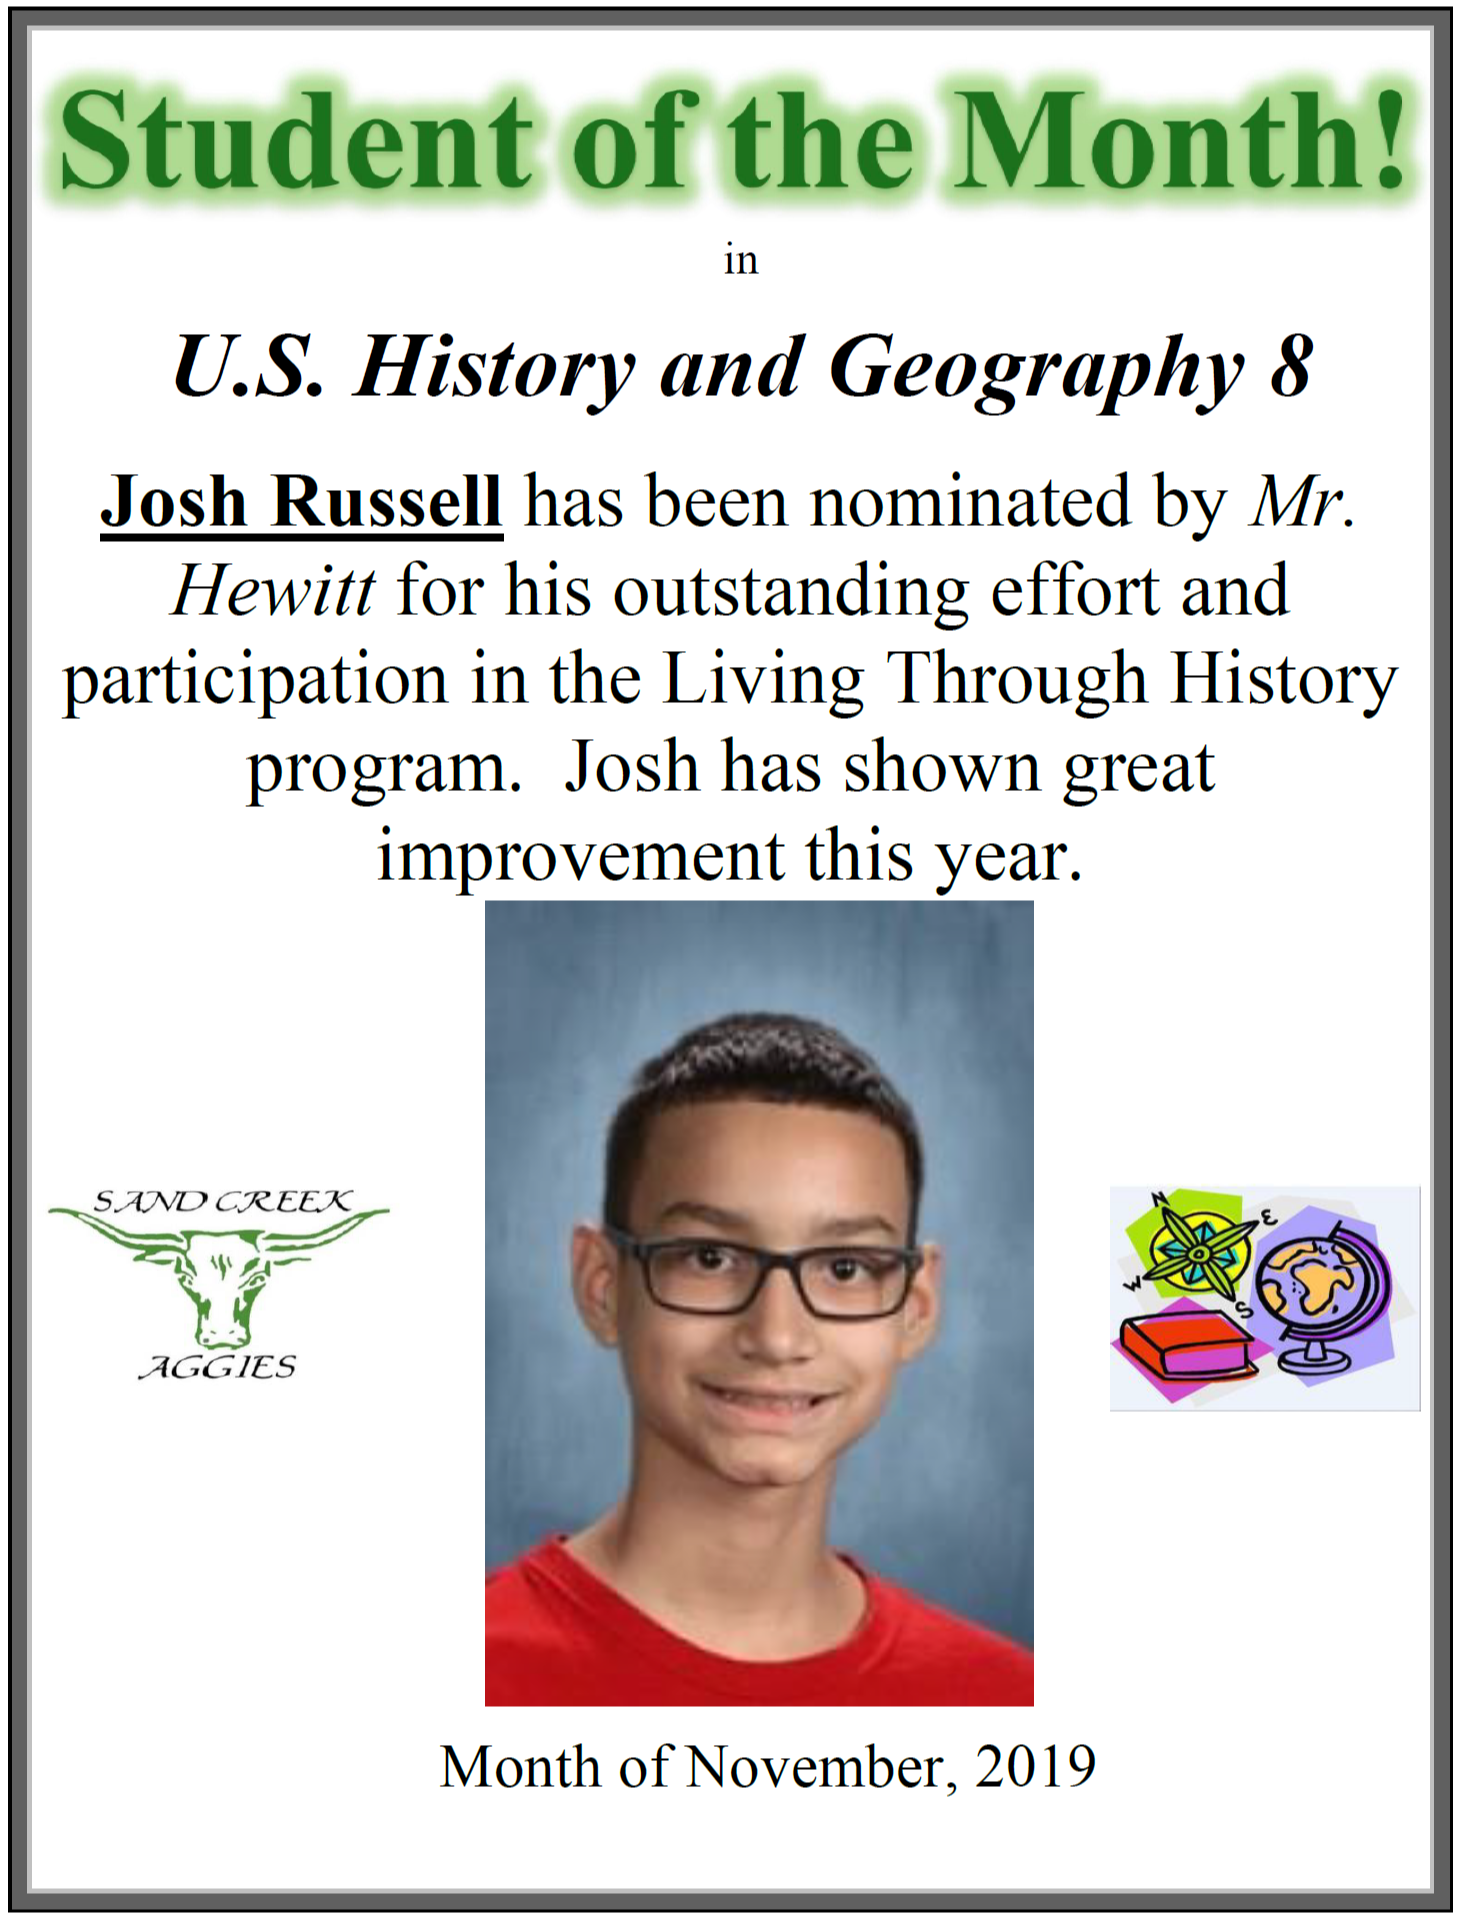 Student of the Month for November 2019